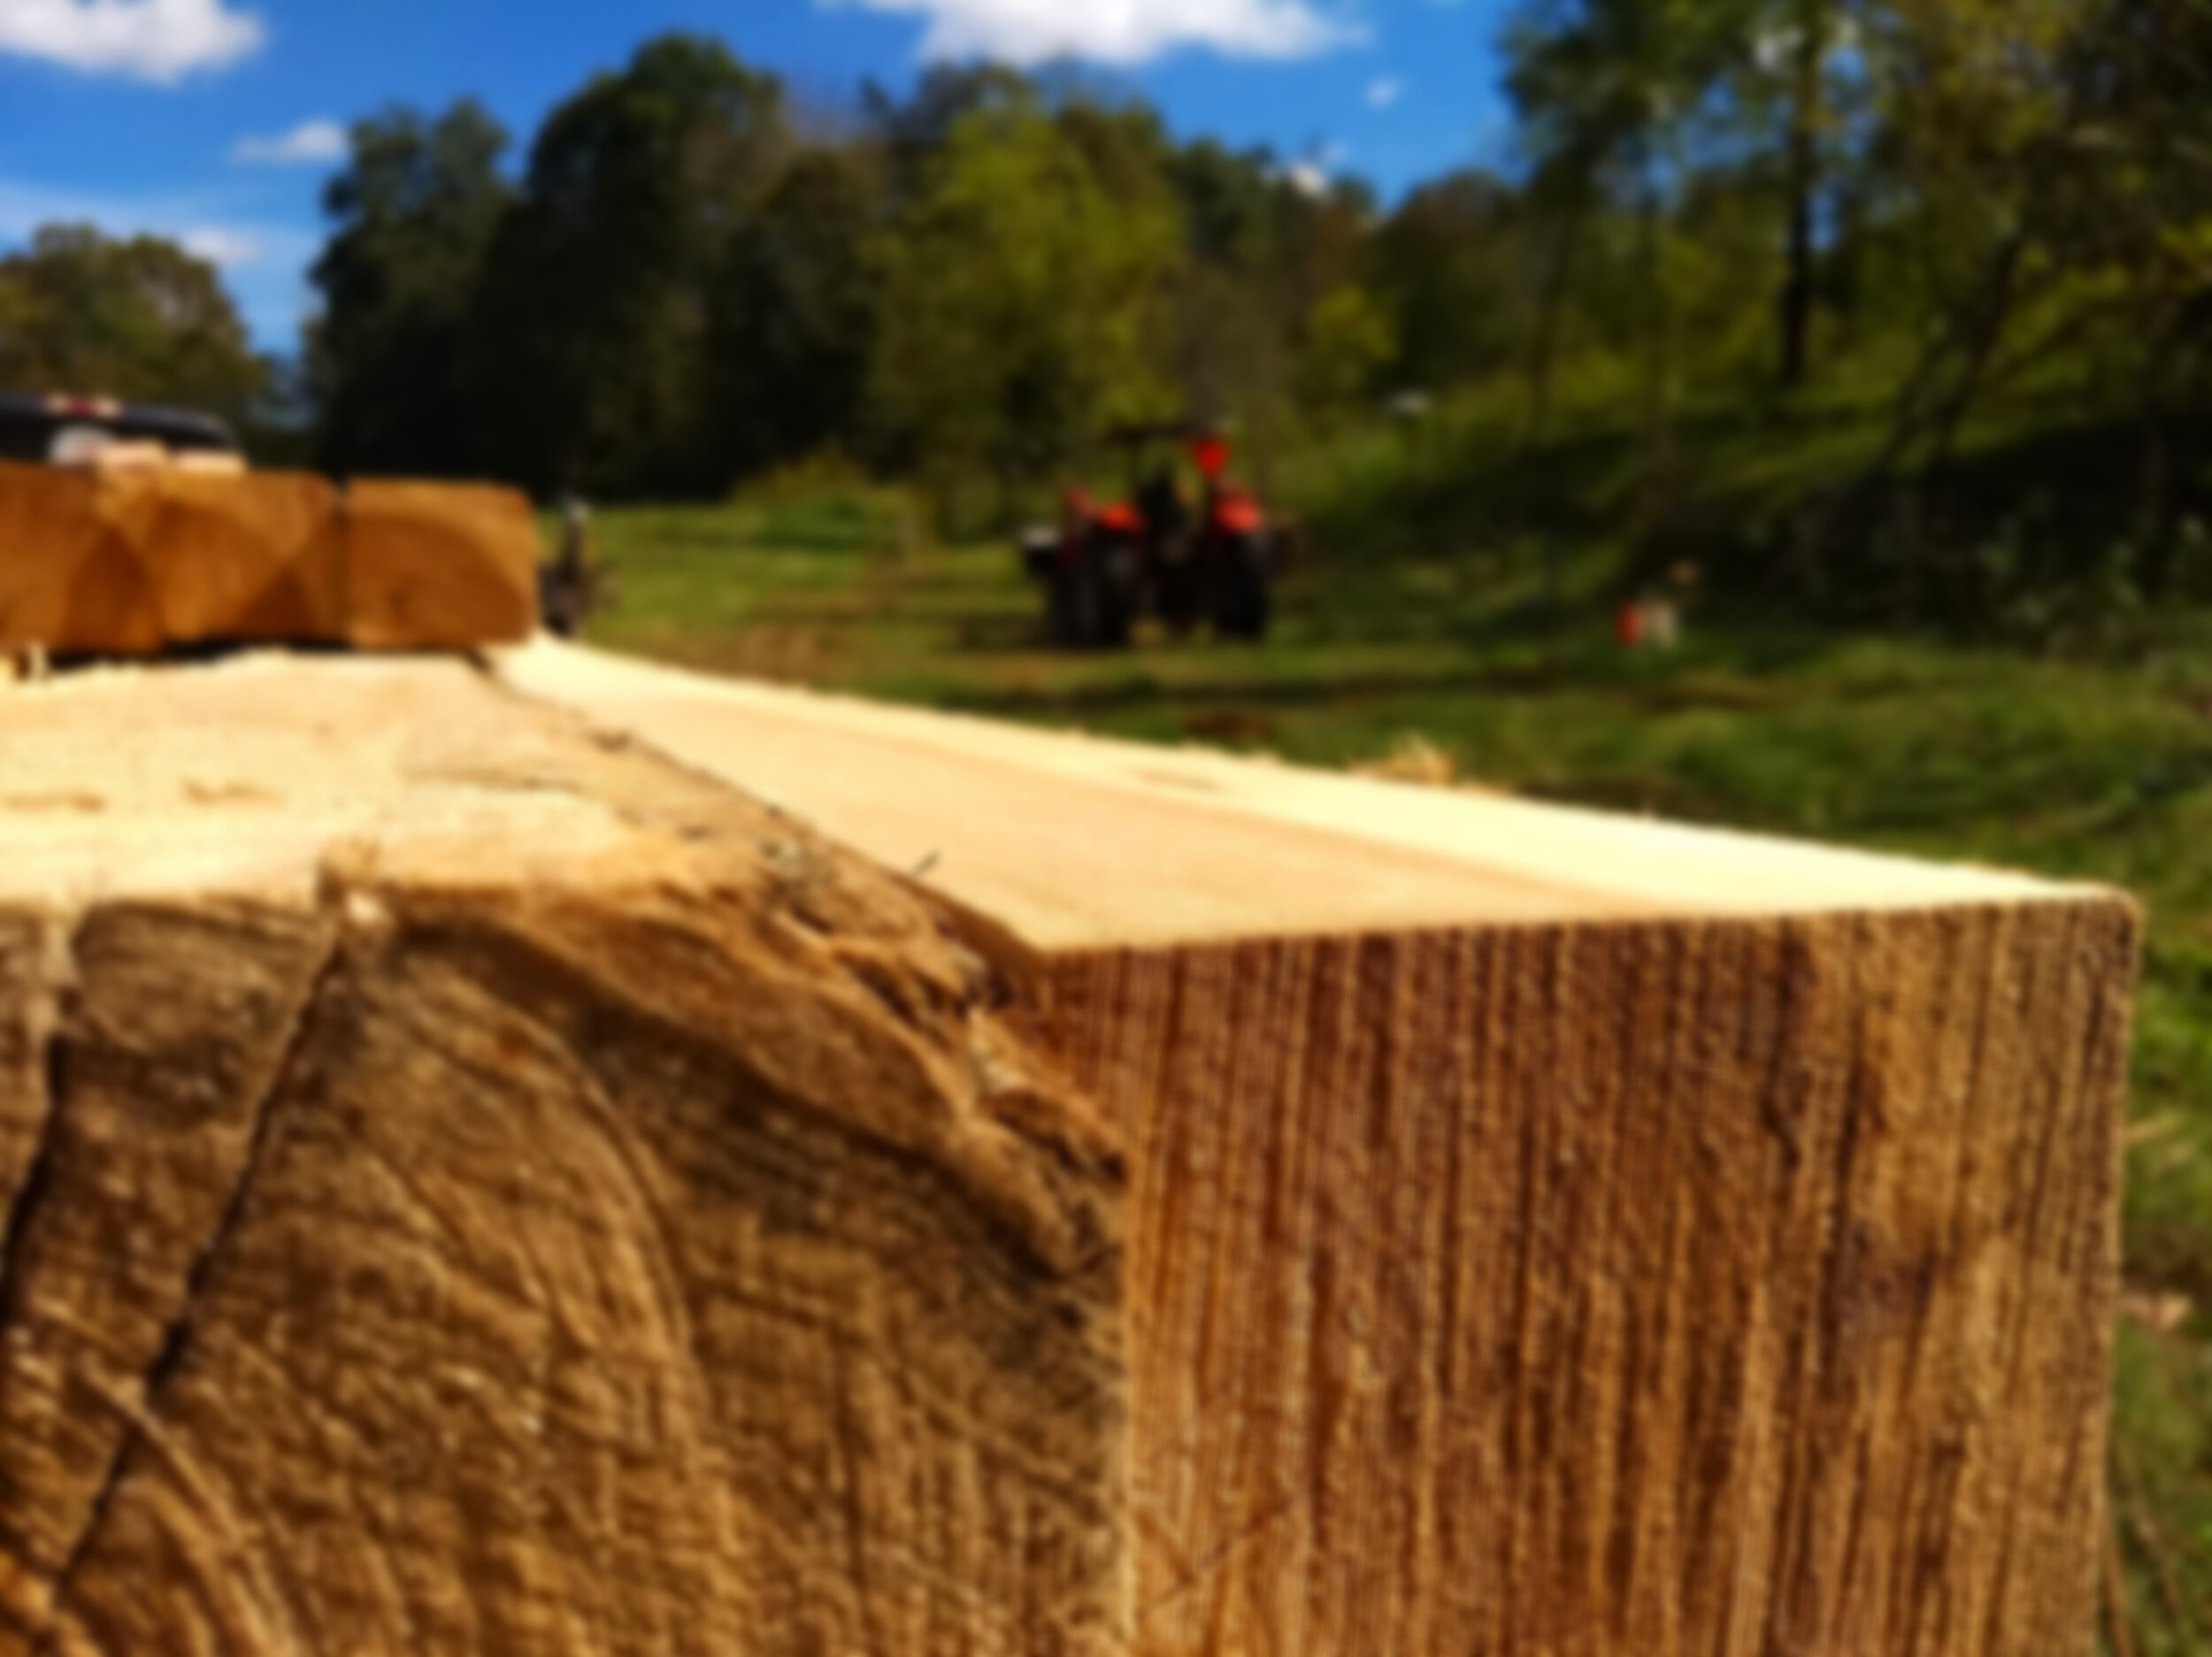 Using the Land - The posts that we are using for the barn are recently milled trees off the farm. It is a wonderful privilege to be able to use the resources that God has given us.